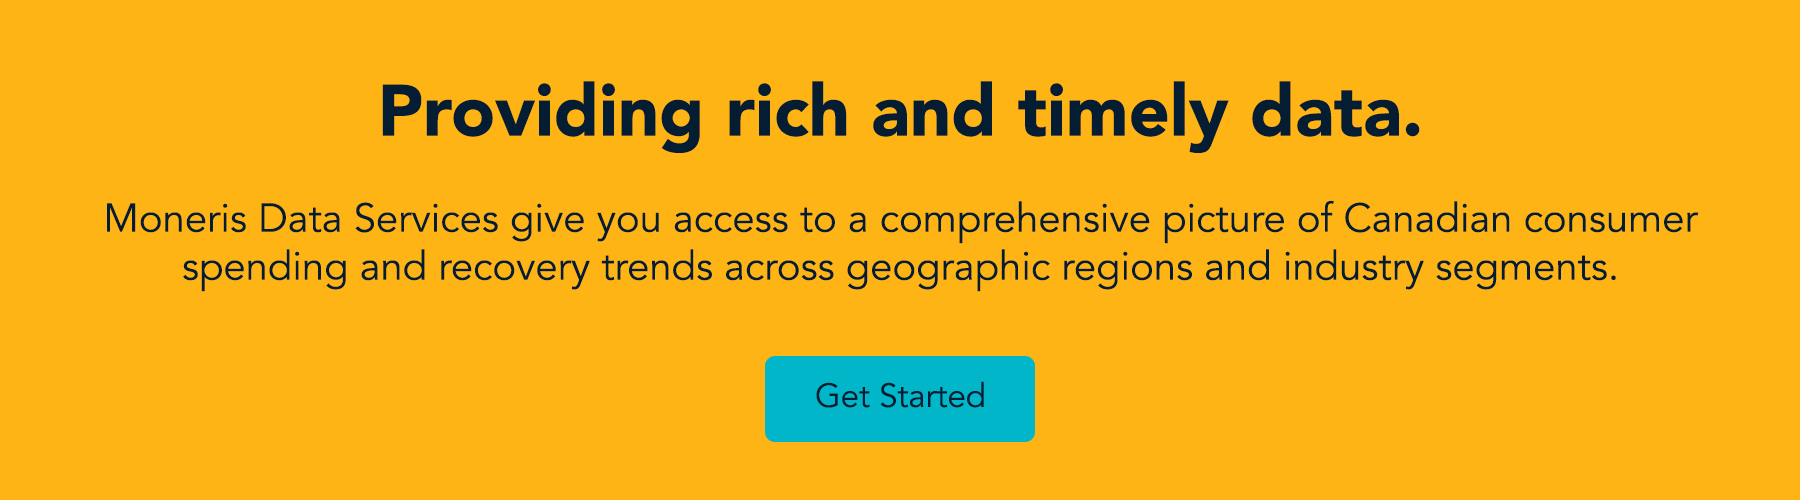 Providing rich and timely data. Moneris Data Services give you access to a comprehensive picture of Canadian consumer spending and recovery trends across geographic regions and industry segments. Get Started